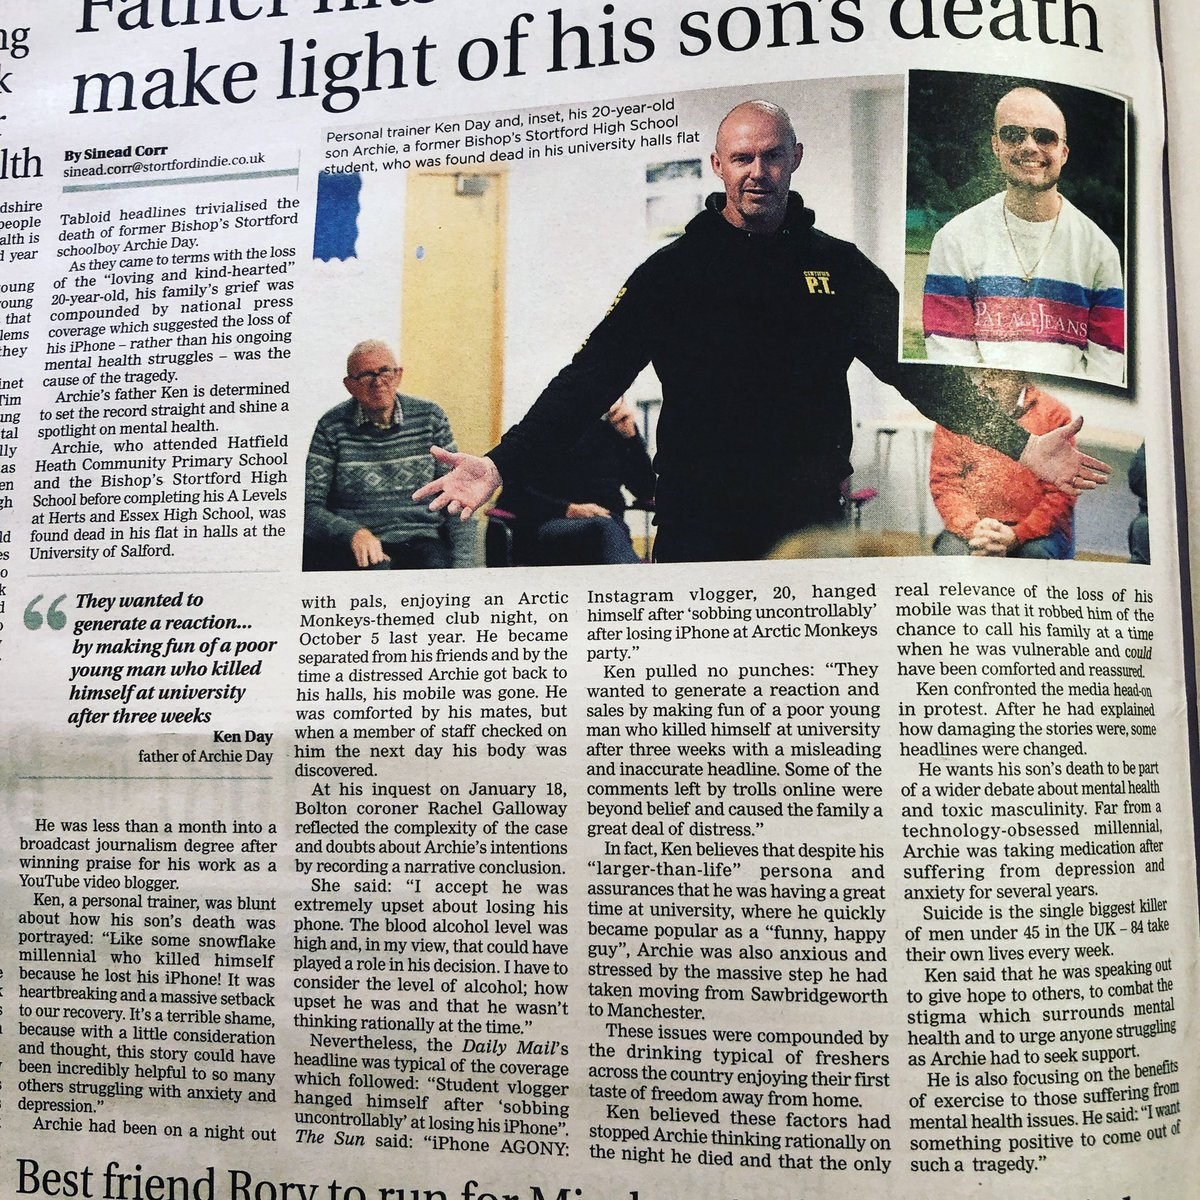 Thank you to the Bishops Stortford Independent for helping us set the record straight. .  #suicideprevention #suicideawareness #suicide #mentalhealth #mentalhealthawareness #friendsofarchie https://t.co/O6Vxv40j9u